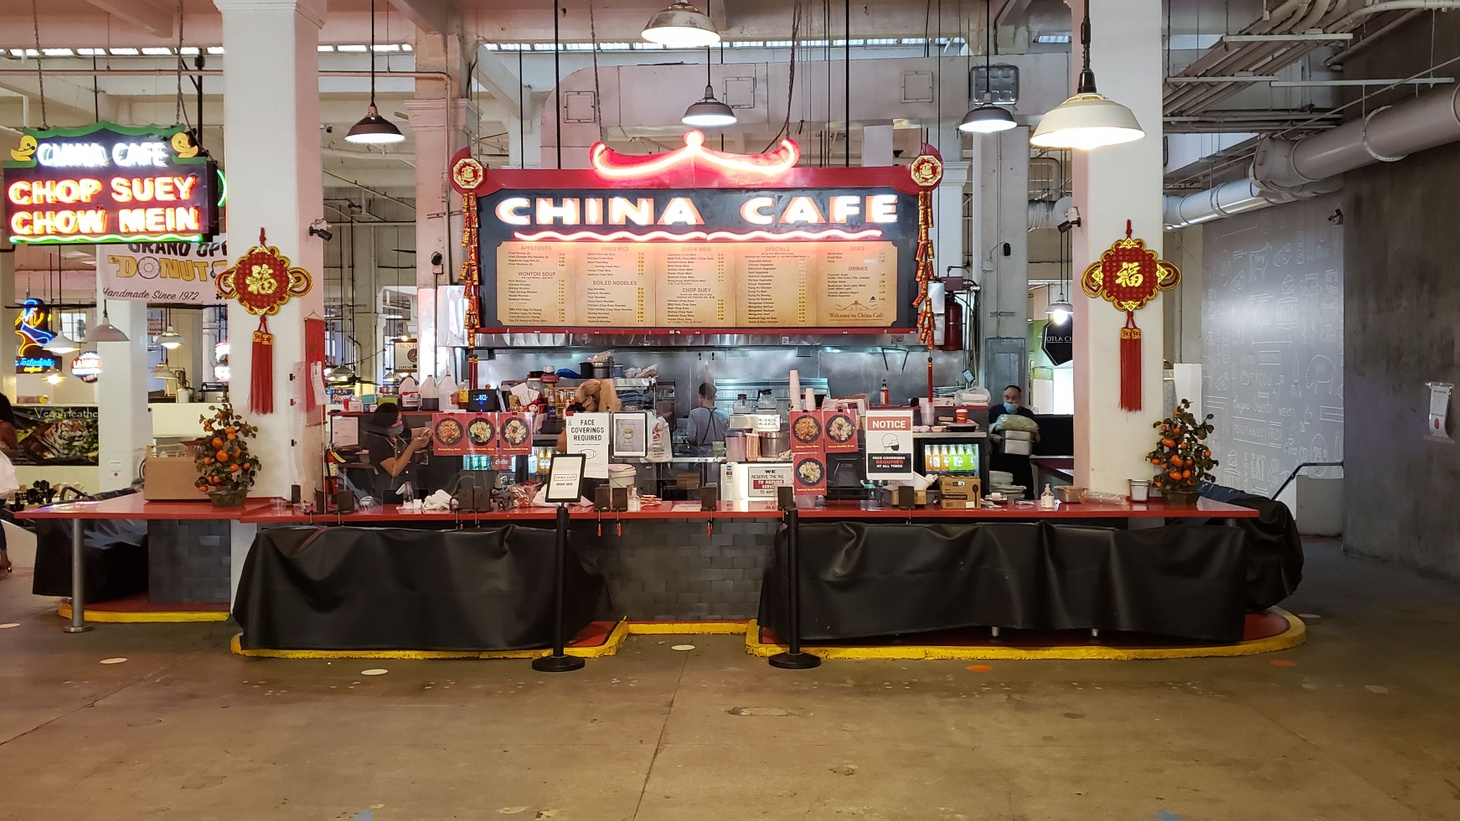 China Cafe and other restaurants in downtown LA's Grand Central Market have seen far fewer customers during the COVID-19 pandemic.